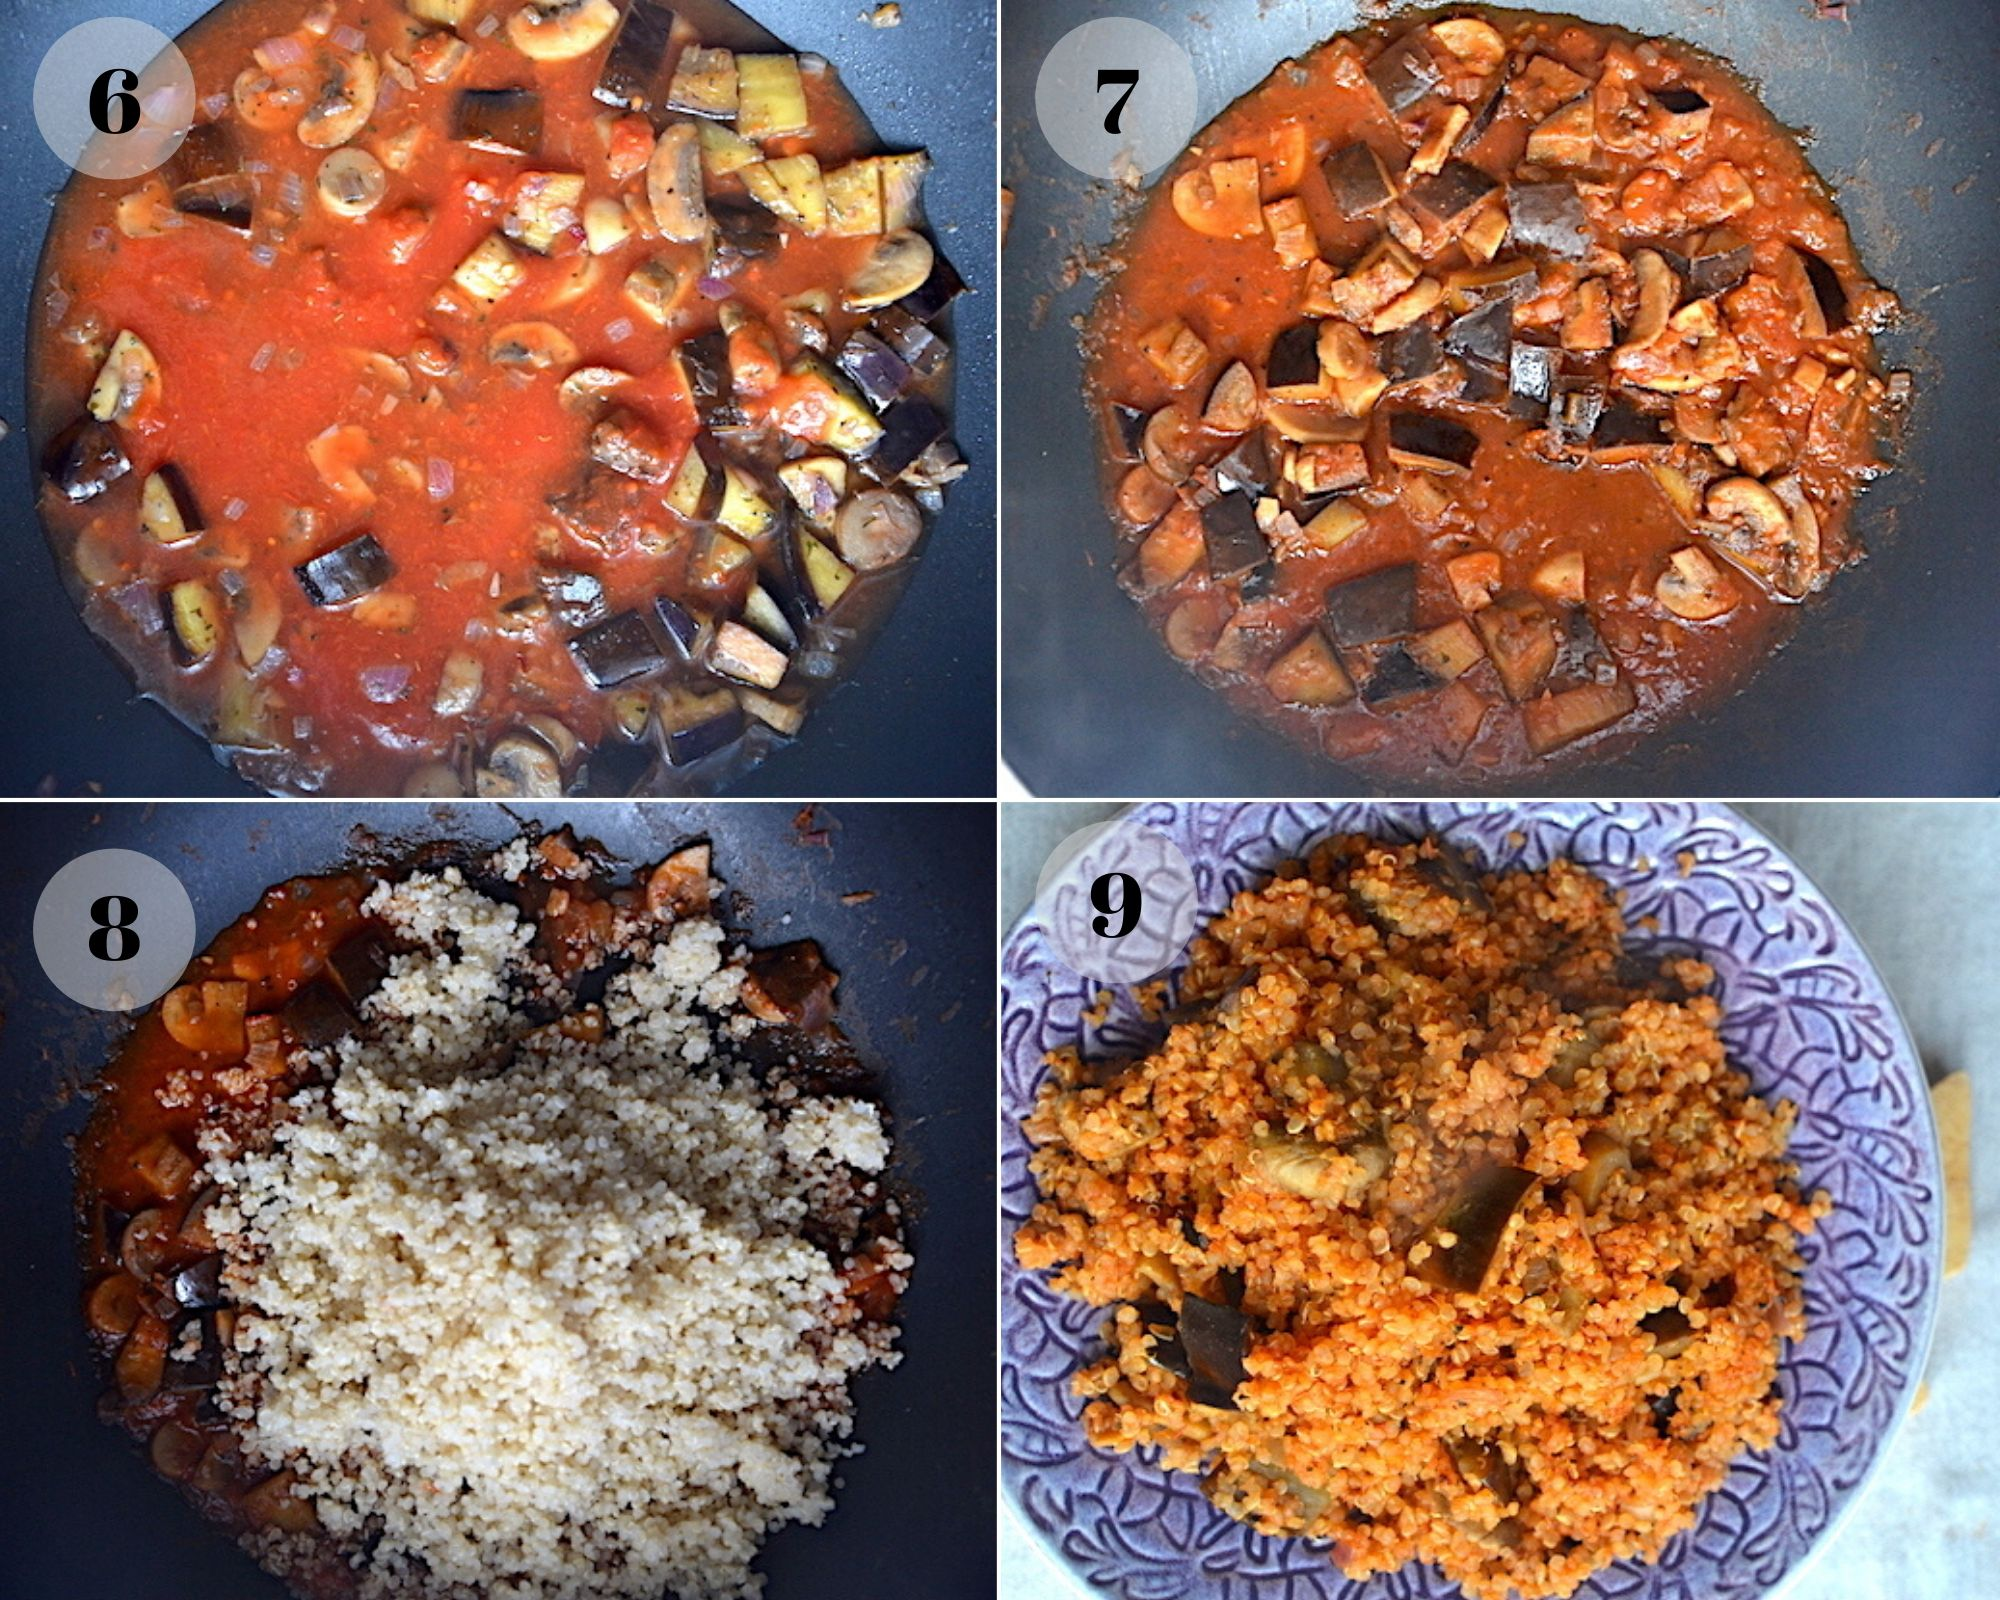 eggplants, tomato sauce and quinoa in a pan